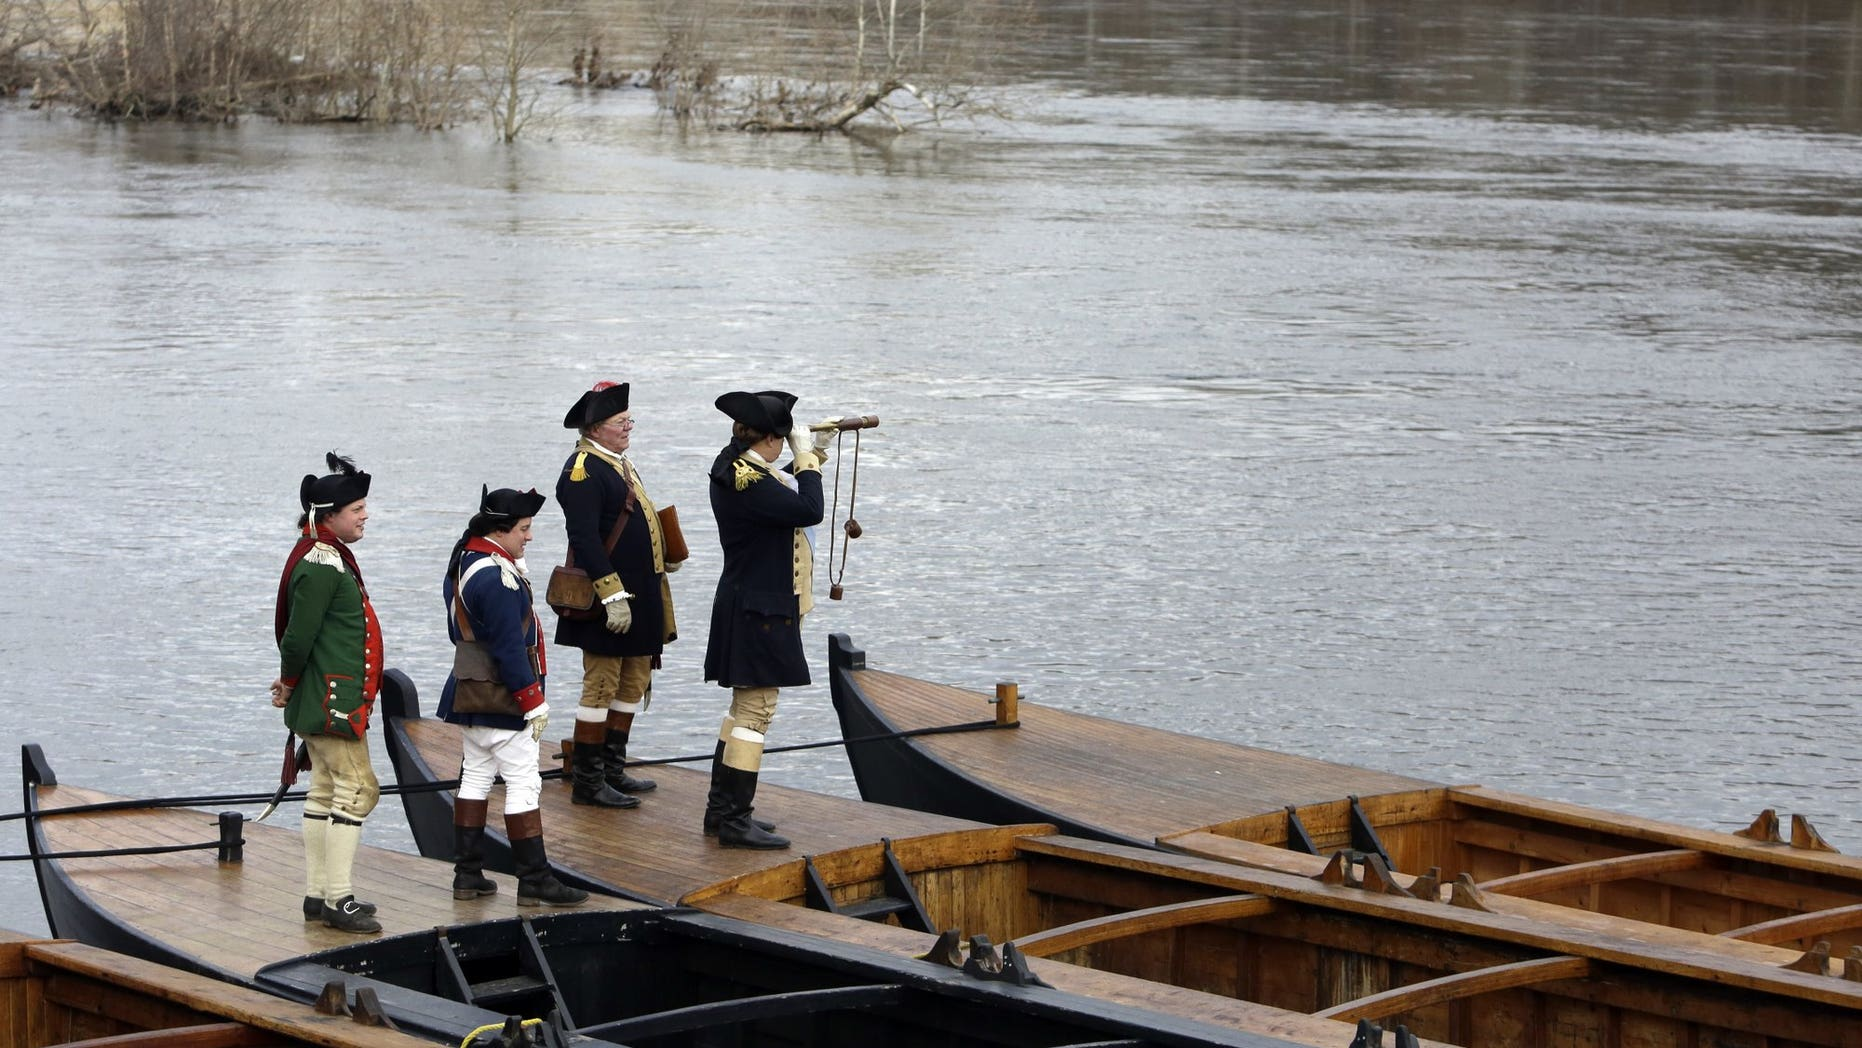 Re-enactor John Godzieba, right, portrays Gen. George Washington as he peers across the Delaware River, Tuesday Dec. 25, 2018 in Washington Crossing, Pa. The annual reenactment of George Washington's daring 1776 crossing of the Delaware River on Christmas Day has once again been left high and dry as organizers announced Monday that the river crossing portion of the reenactment will not take place due to high river conditions following recent rainfall. Other activities carried on as scheduled.